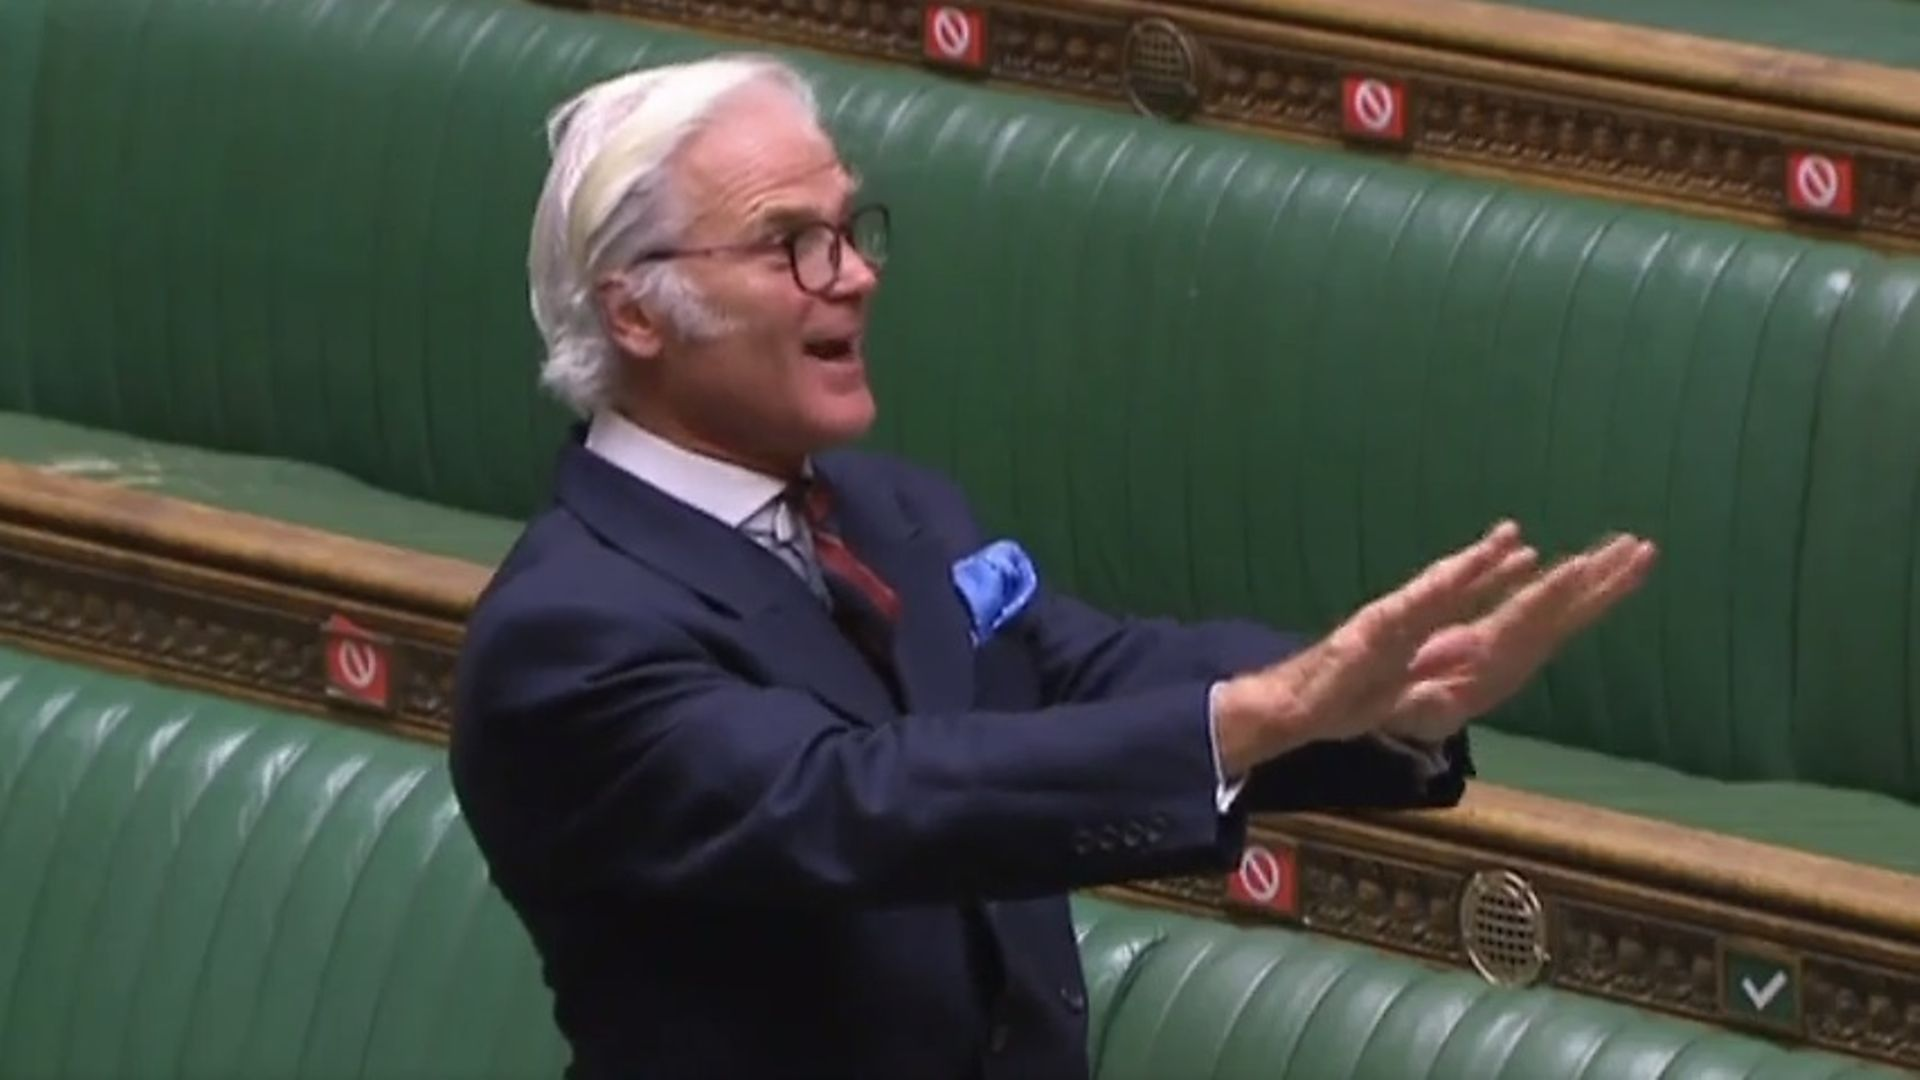 Tory Brexiteer MP Desmond Swayne in the House of Commons - Credit: Parliament TV